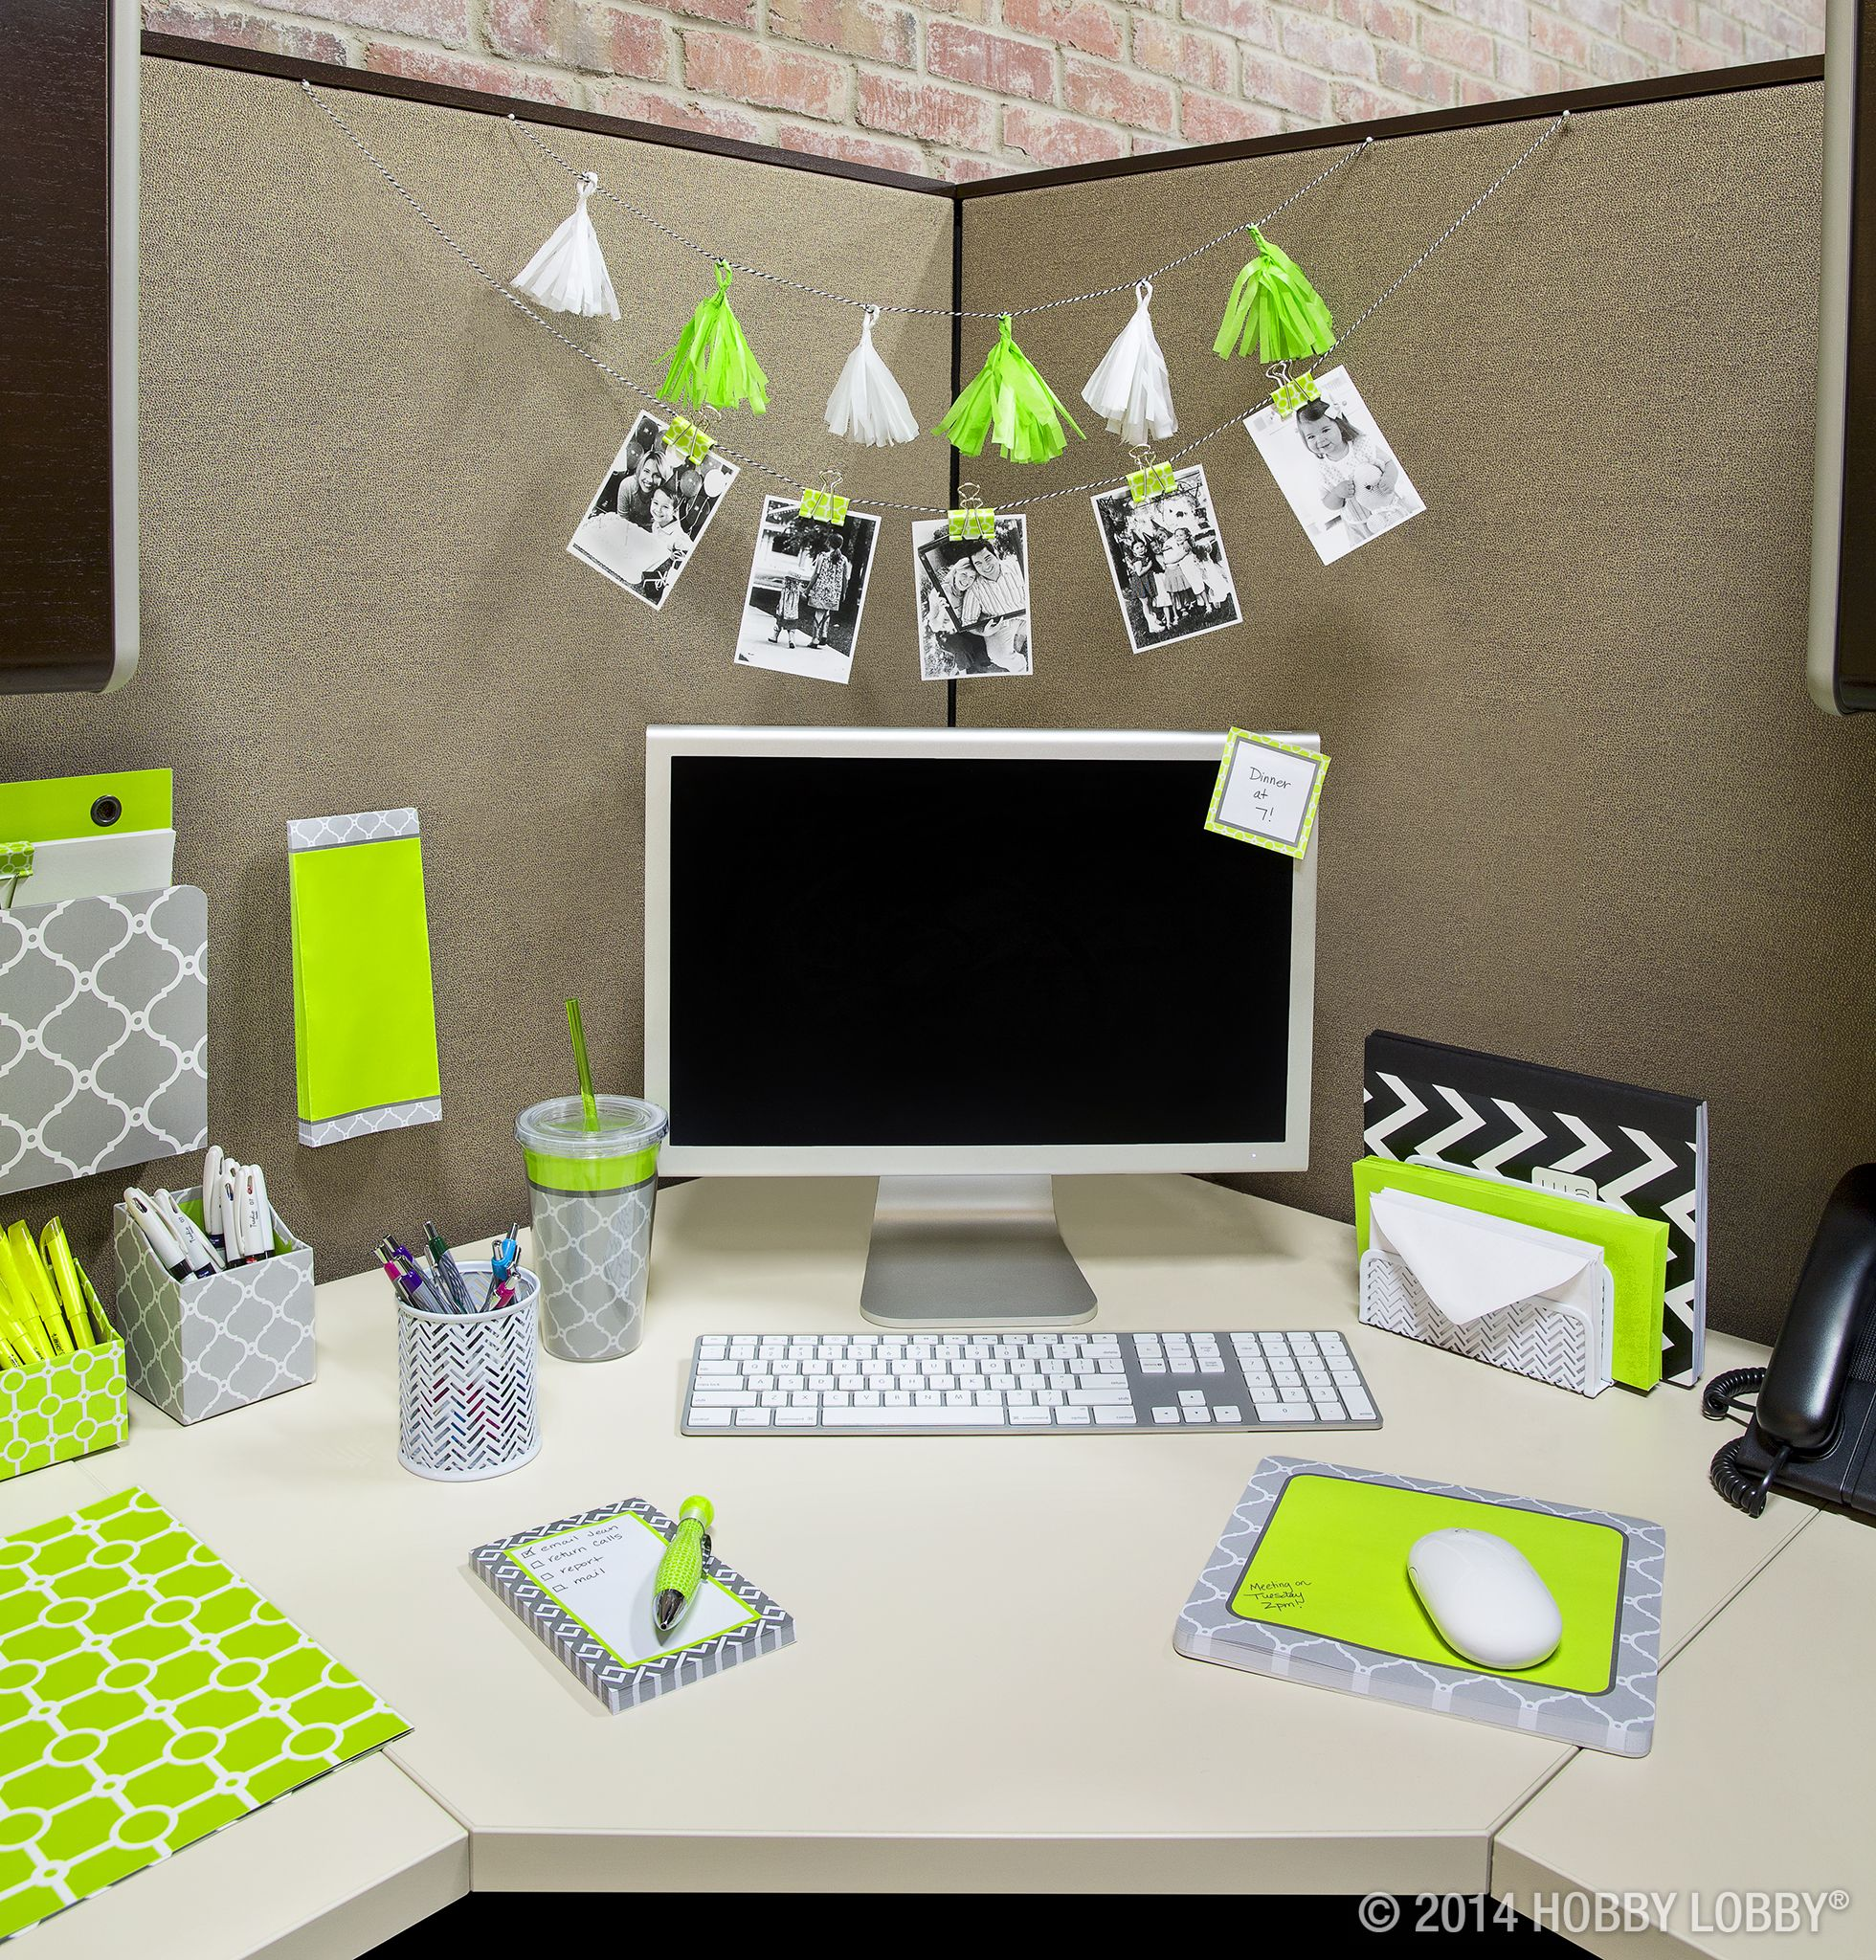 Swell 17 Best Images About Cubicle Decor On Pinterest Cute Cubicle Largest Home Design Picture Inspirations Pitcheantrous